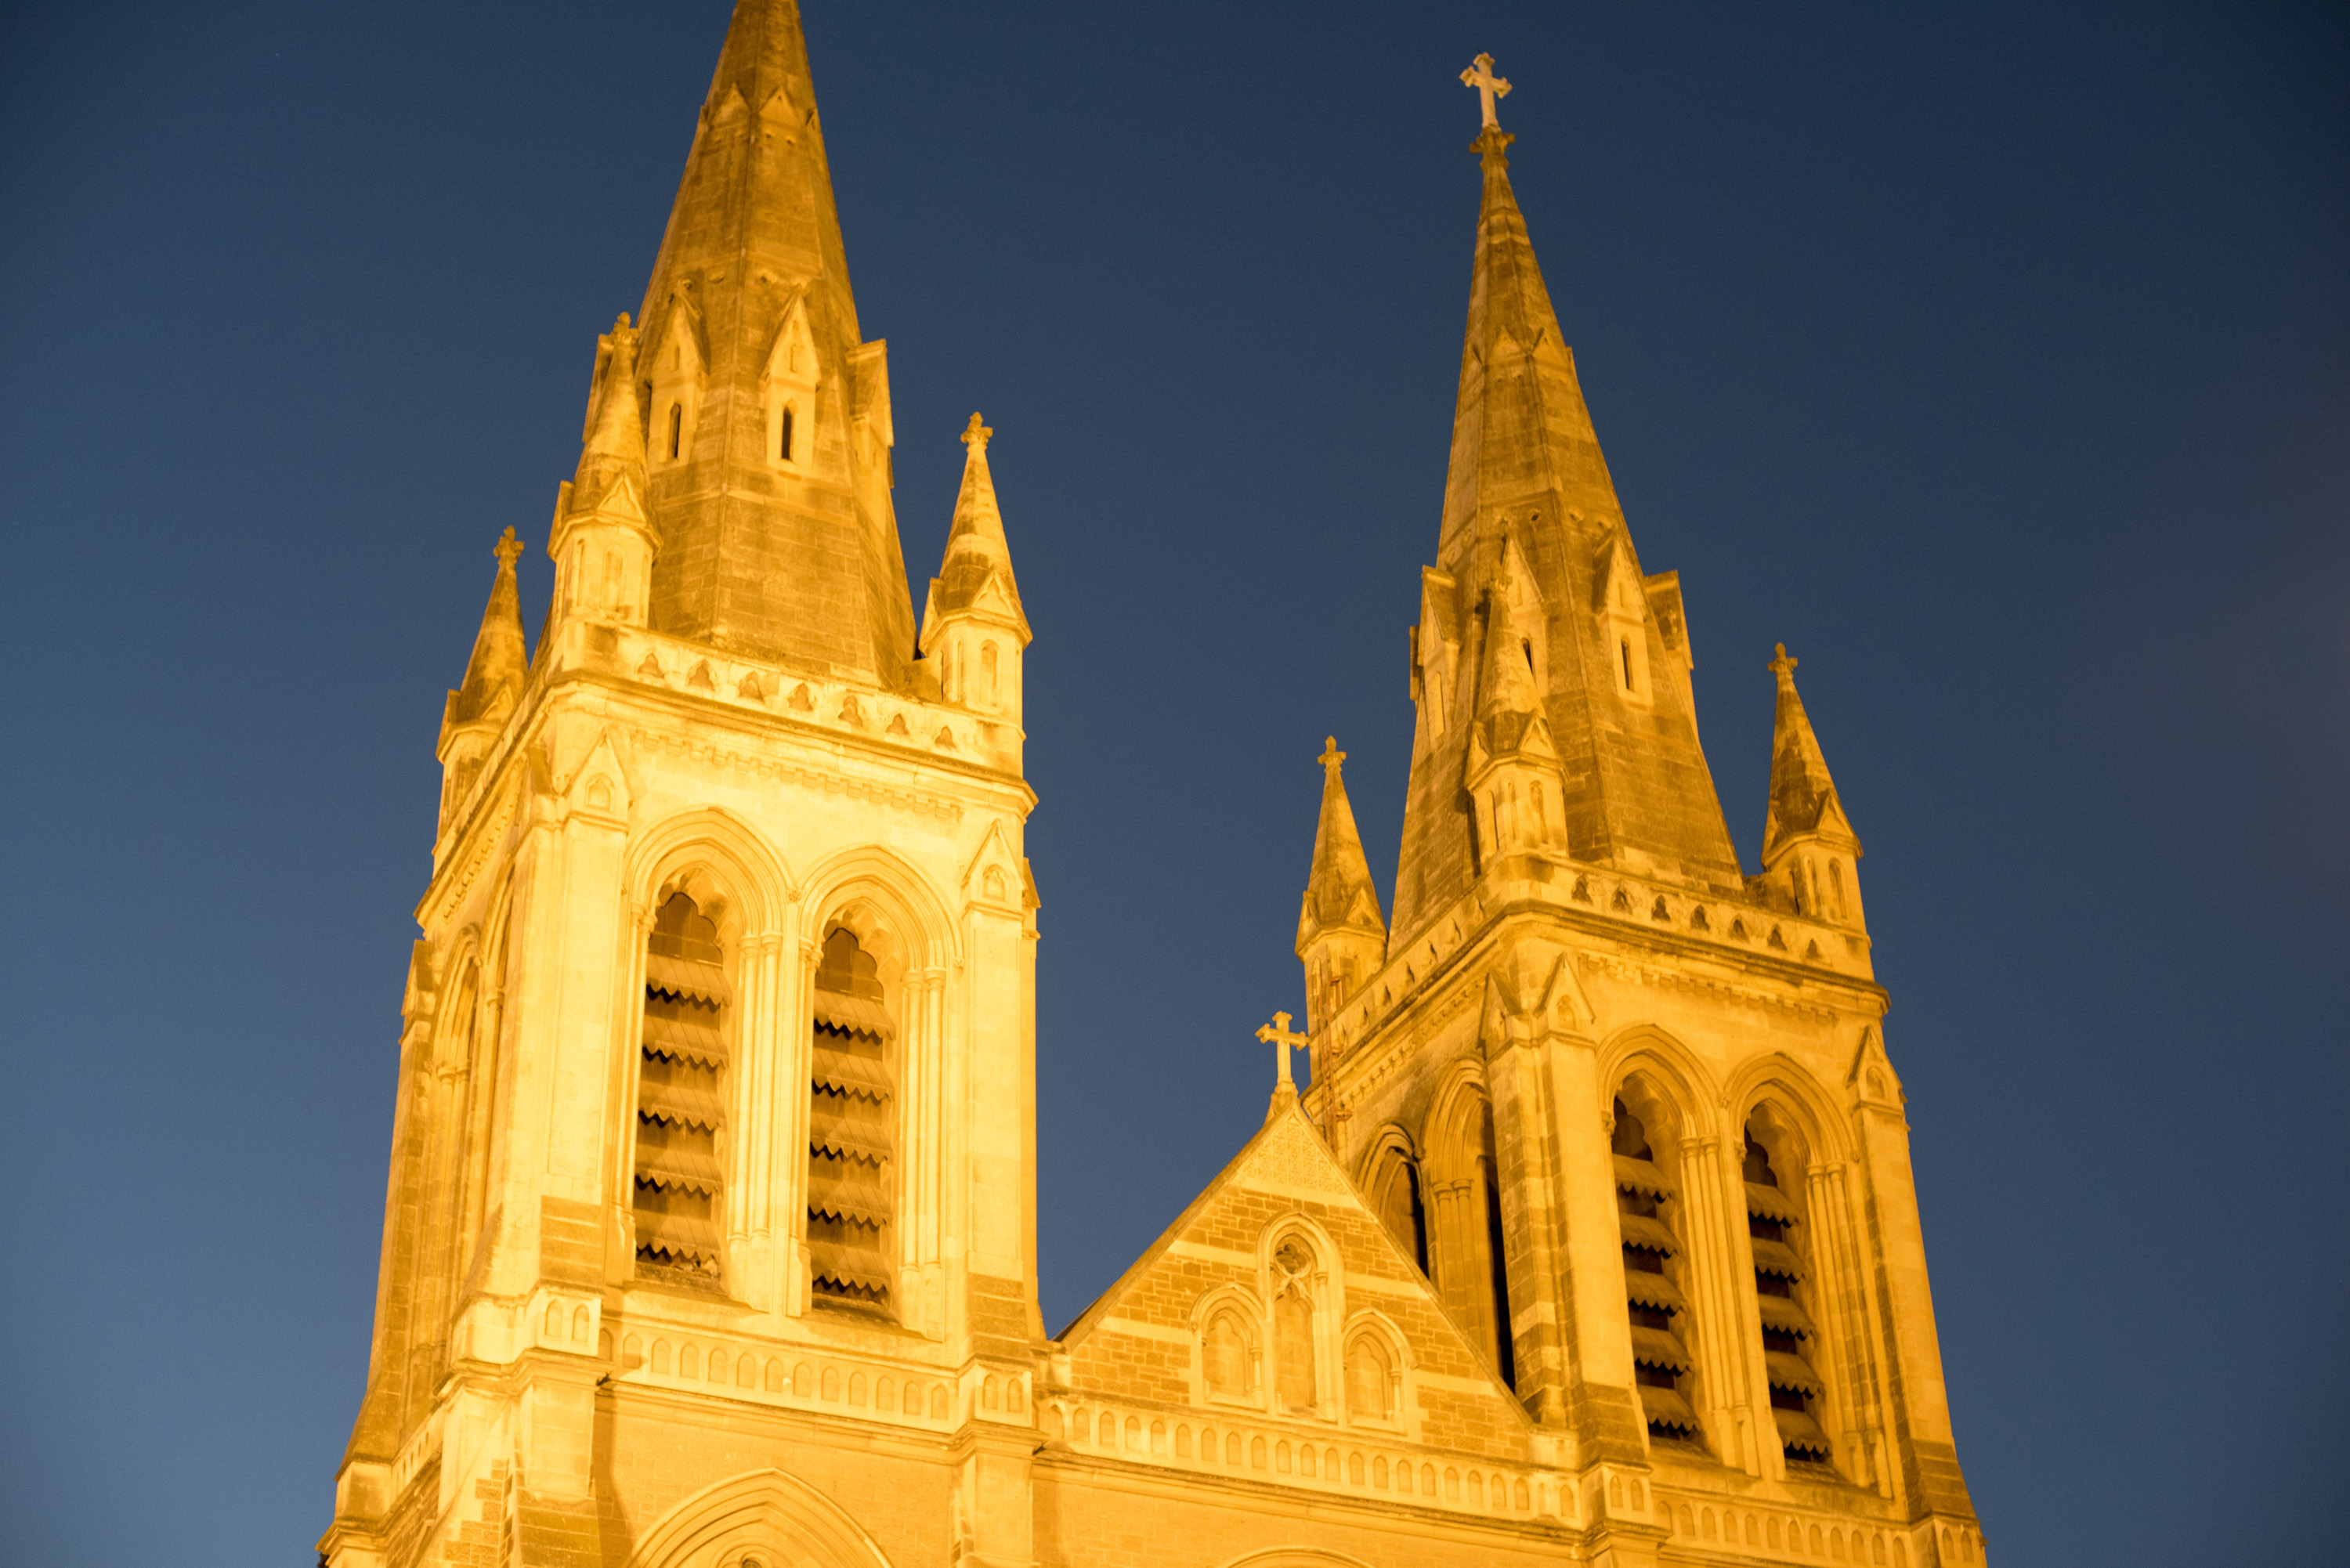 Illuminated twin spires of St Peters Cathedral in Adelaide, Australia at twilight in a close up low angle exterior view